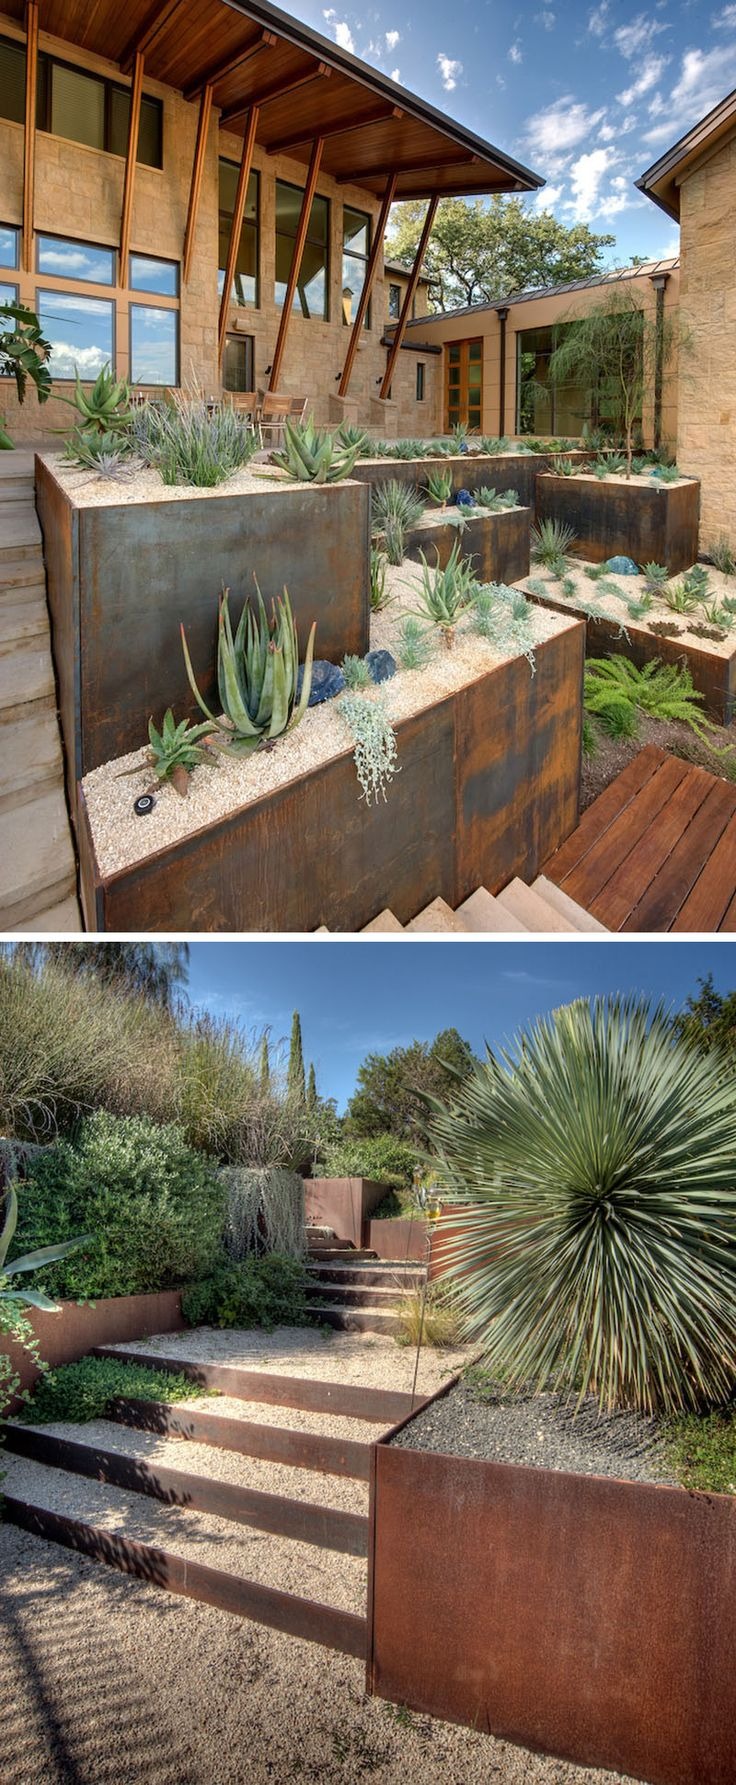 9 Ideas For Including Weathering Steel Planters In Your Garden // The use of succulents and other desert plants in these weathered steel planters create a low maintenance garden that looks good all year round.